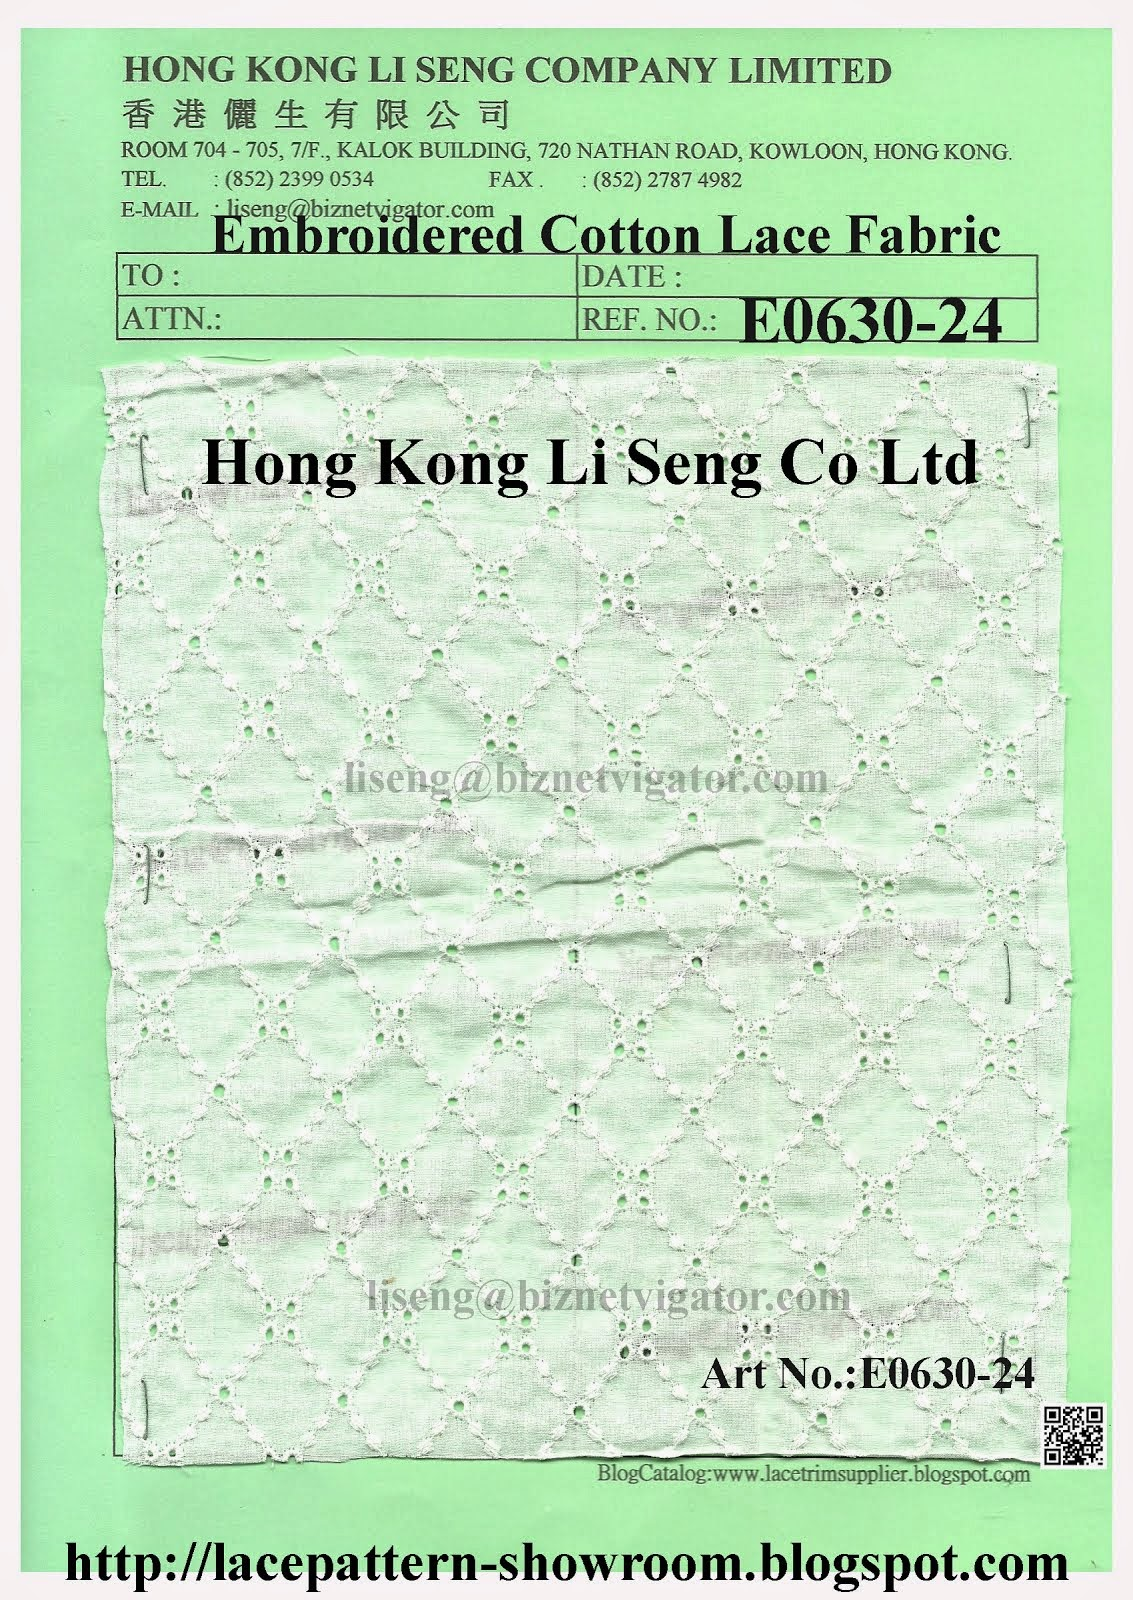 Embroidered Cotton Lace Fabric Manufacturer - Hong Kong Li Seng Co Ltd